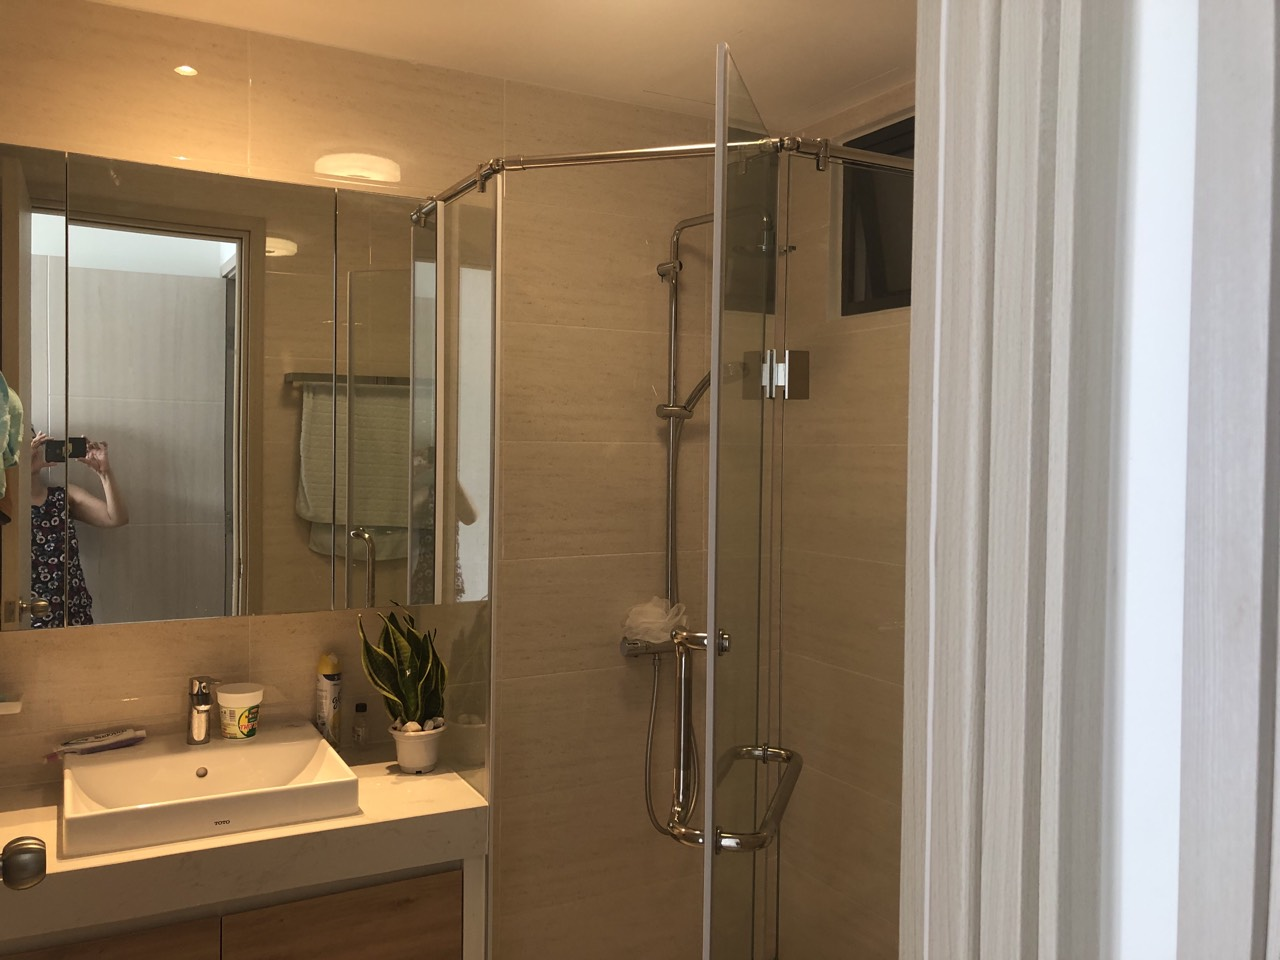 apartment for rent in district 2 hcmc new city apartment for rent in district 2 hcmc D224864(6)